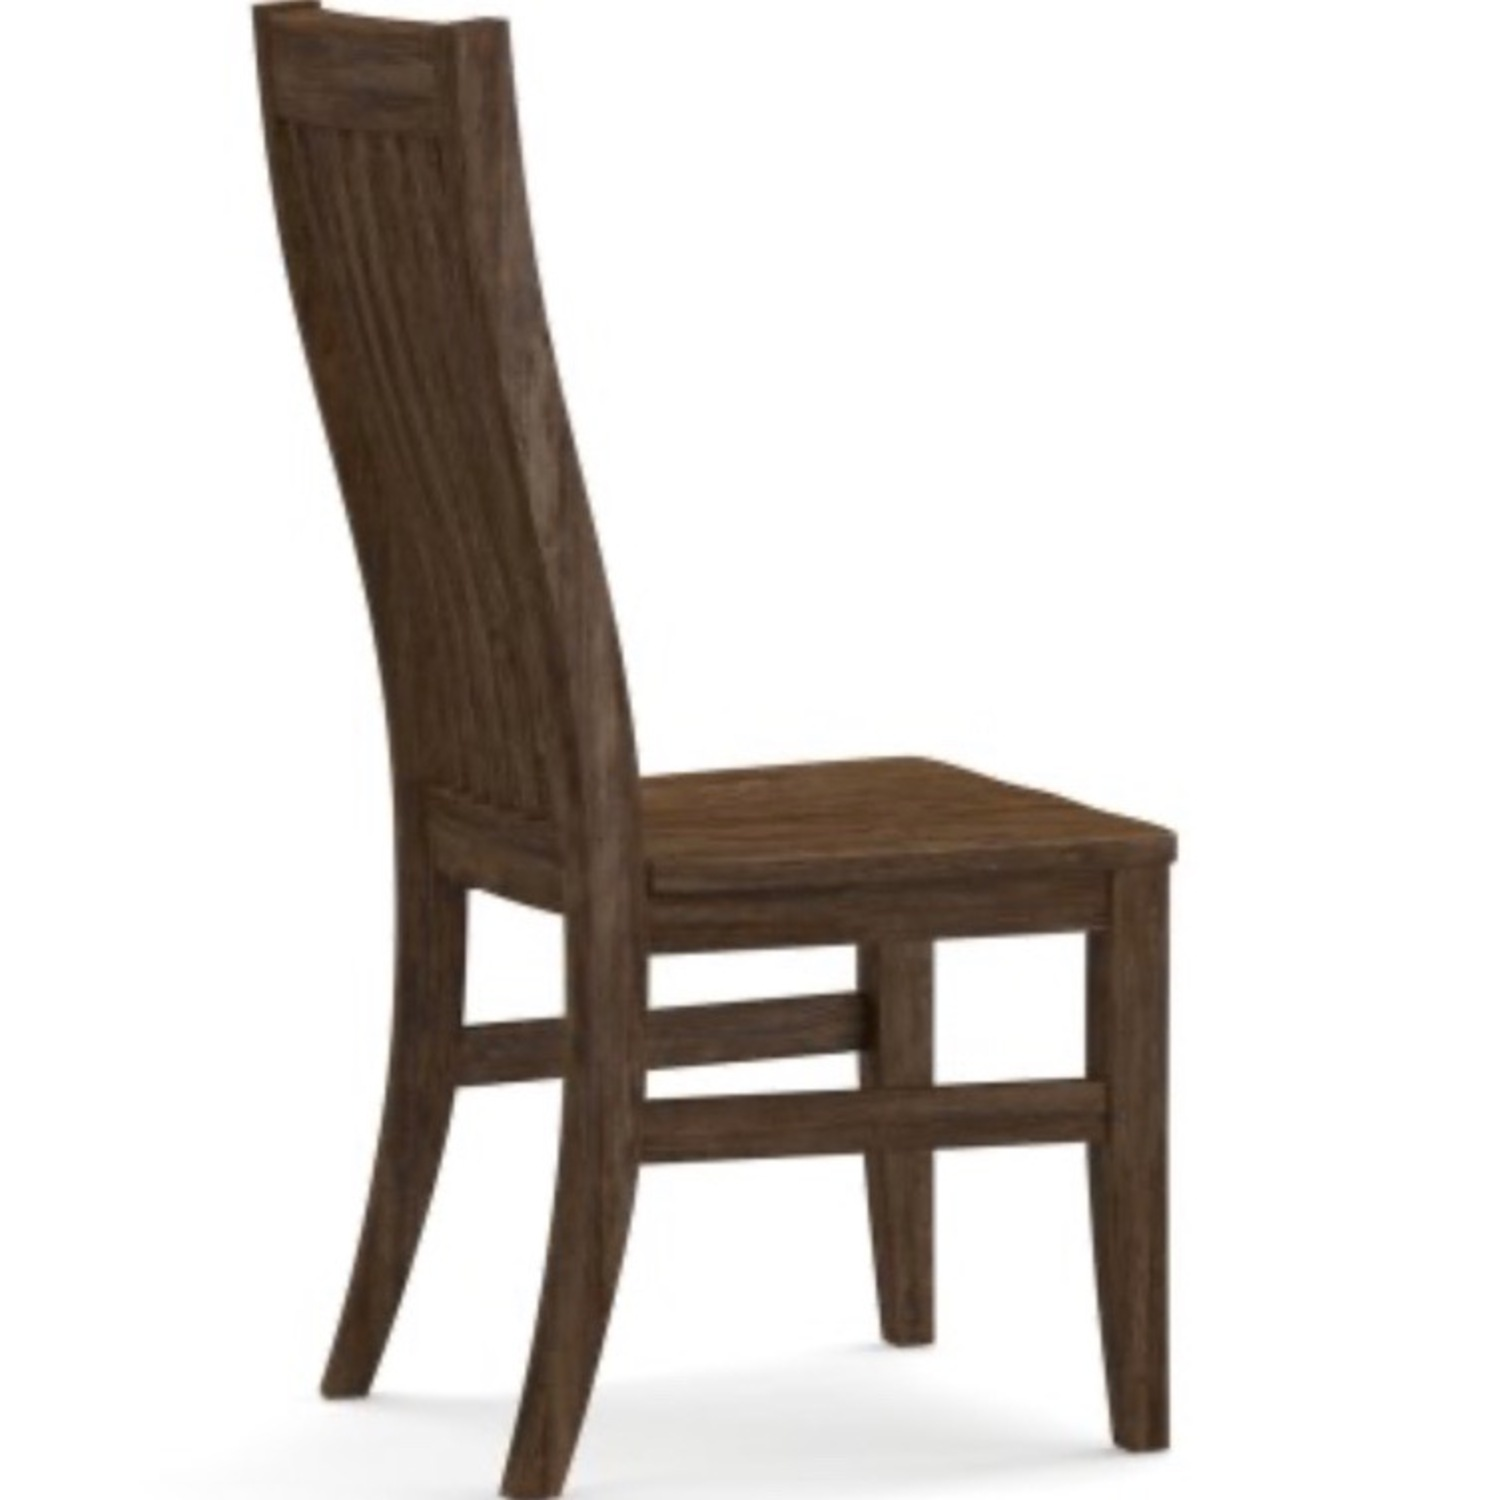 Pottery Barn Rustic Mahogany Trieste Chairs - image-3